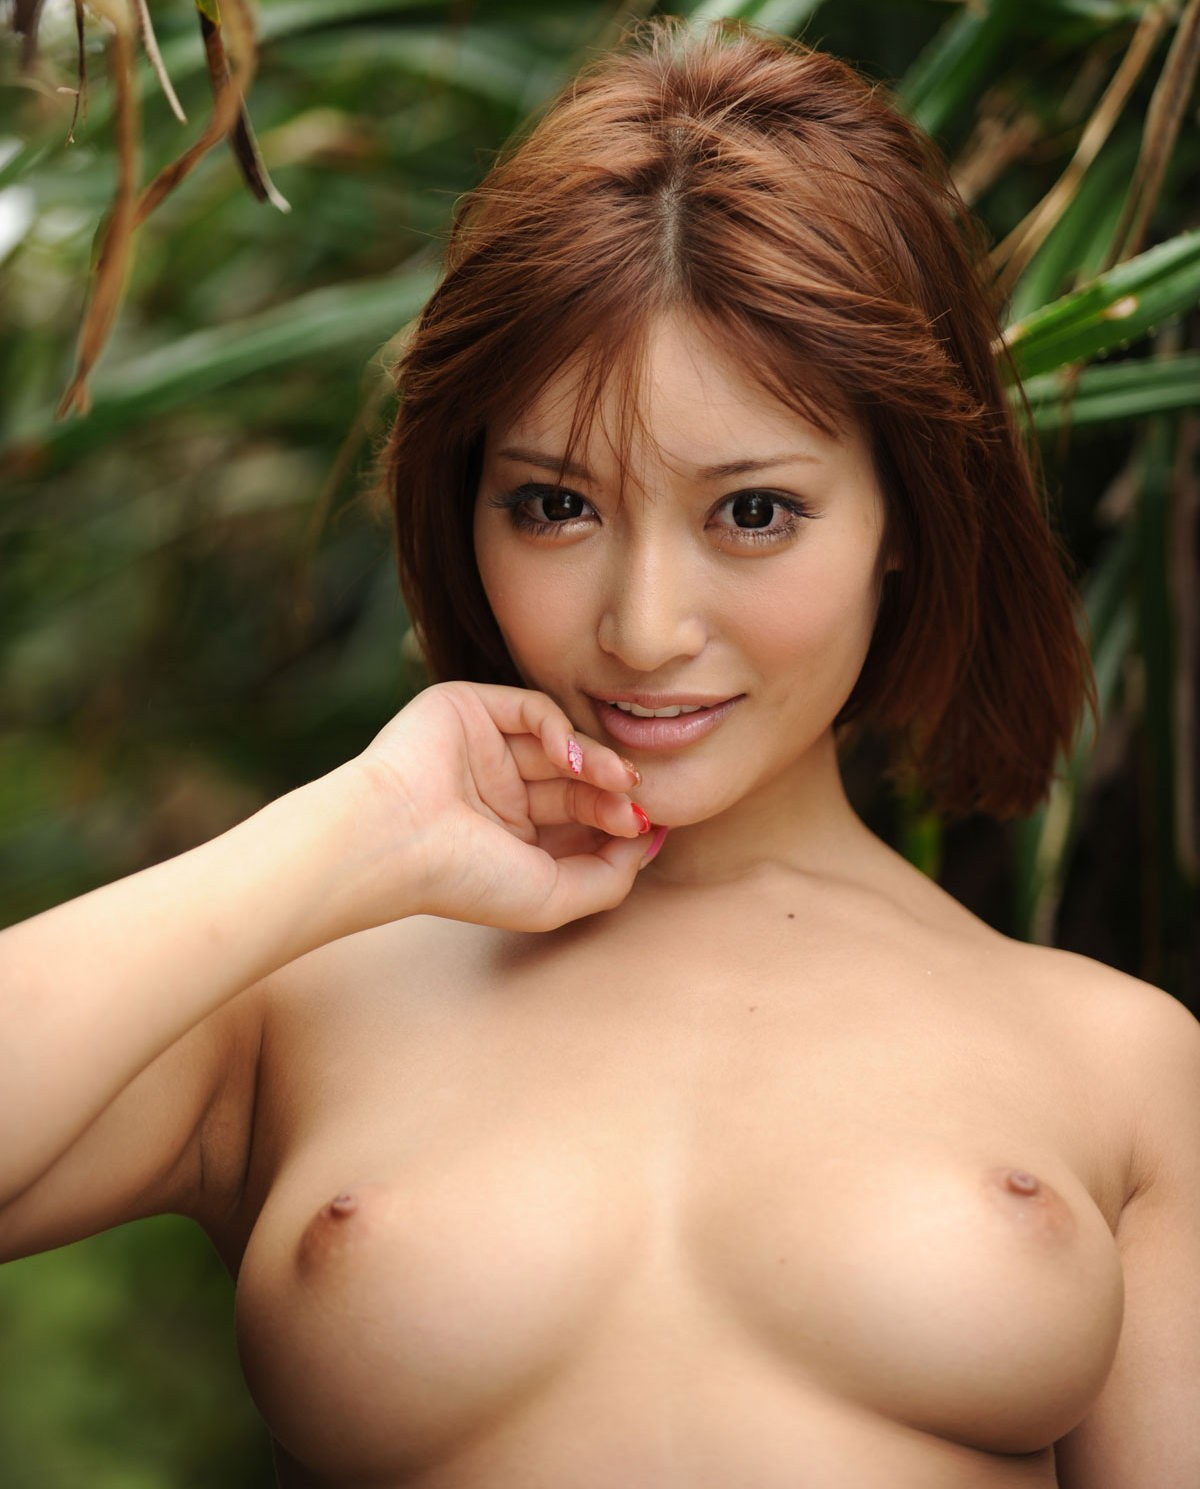 Hot Busty Nude Asian Girls, Hot Nude Asian Girls 65-7706